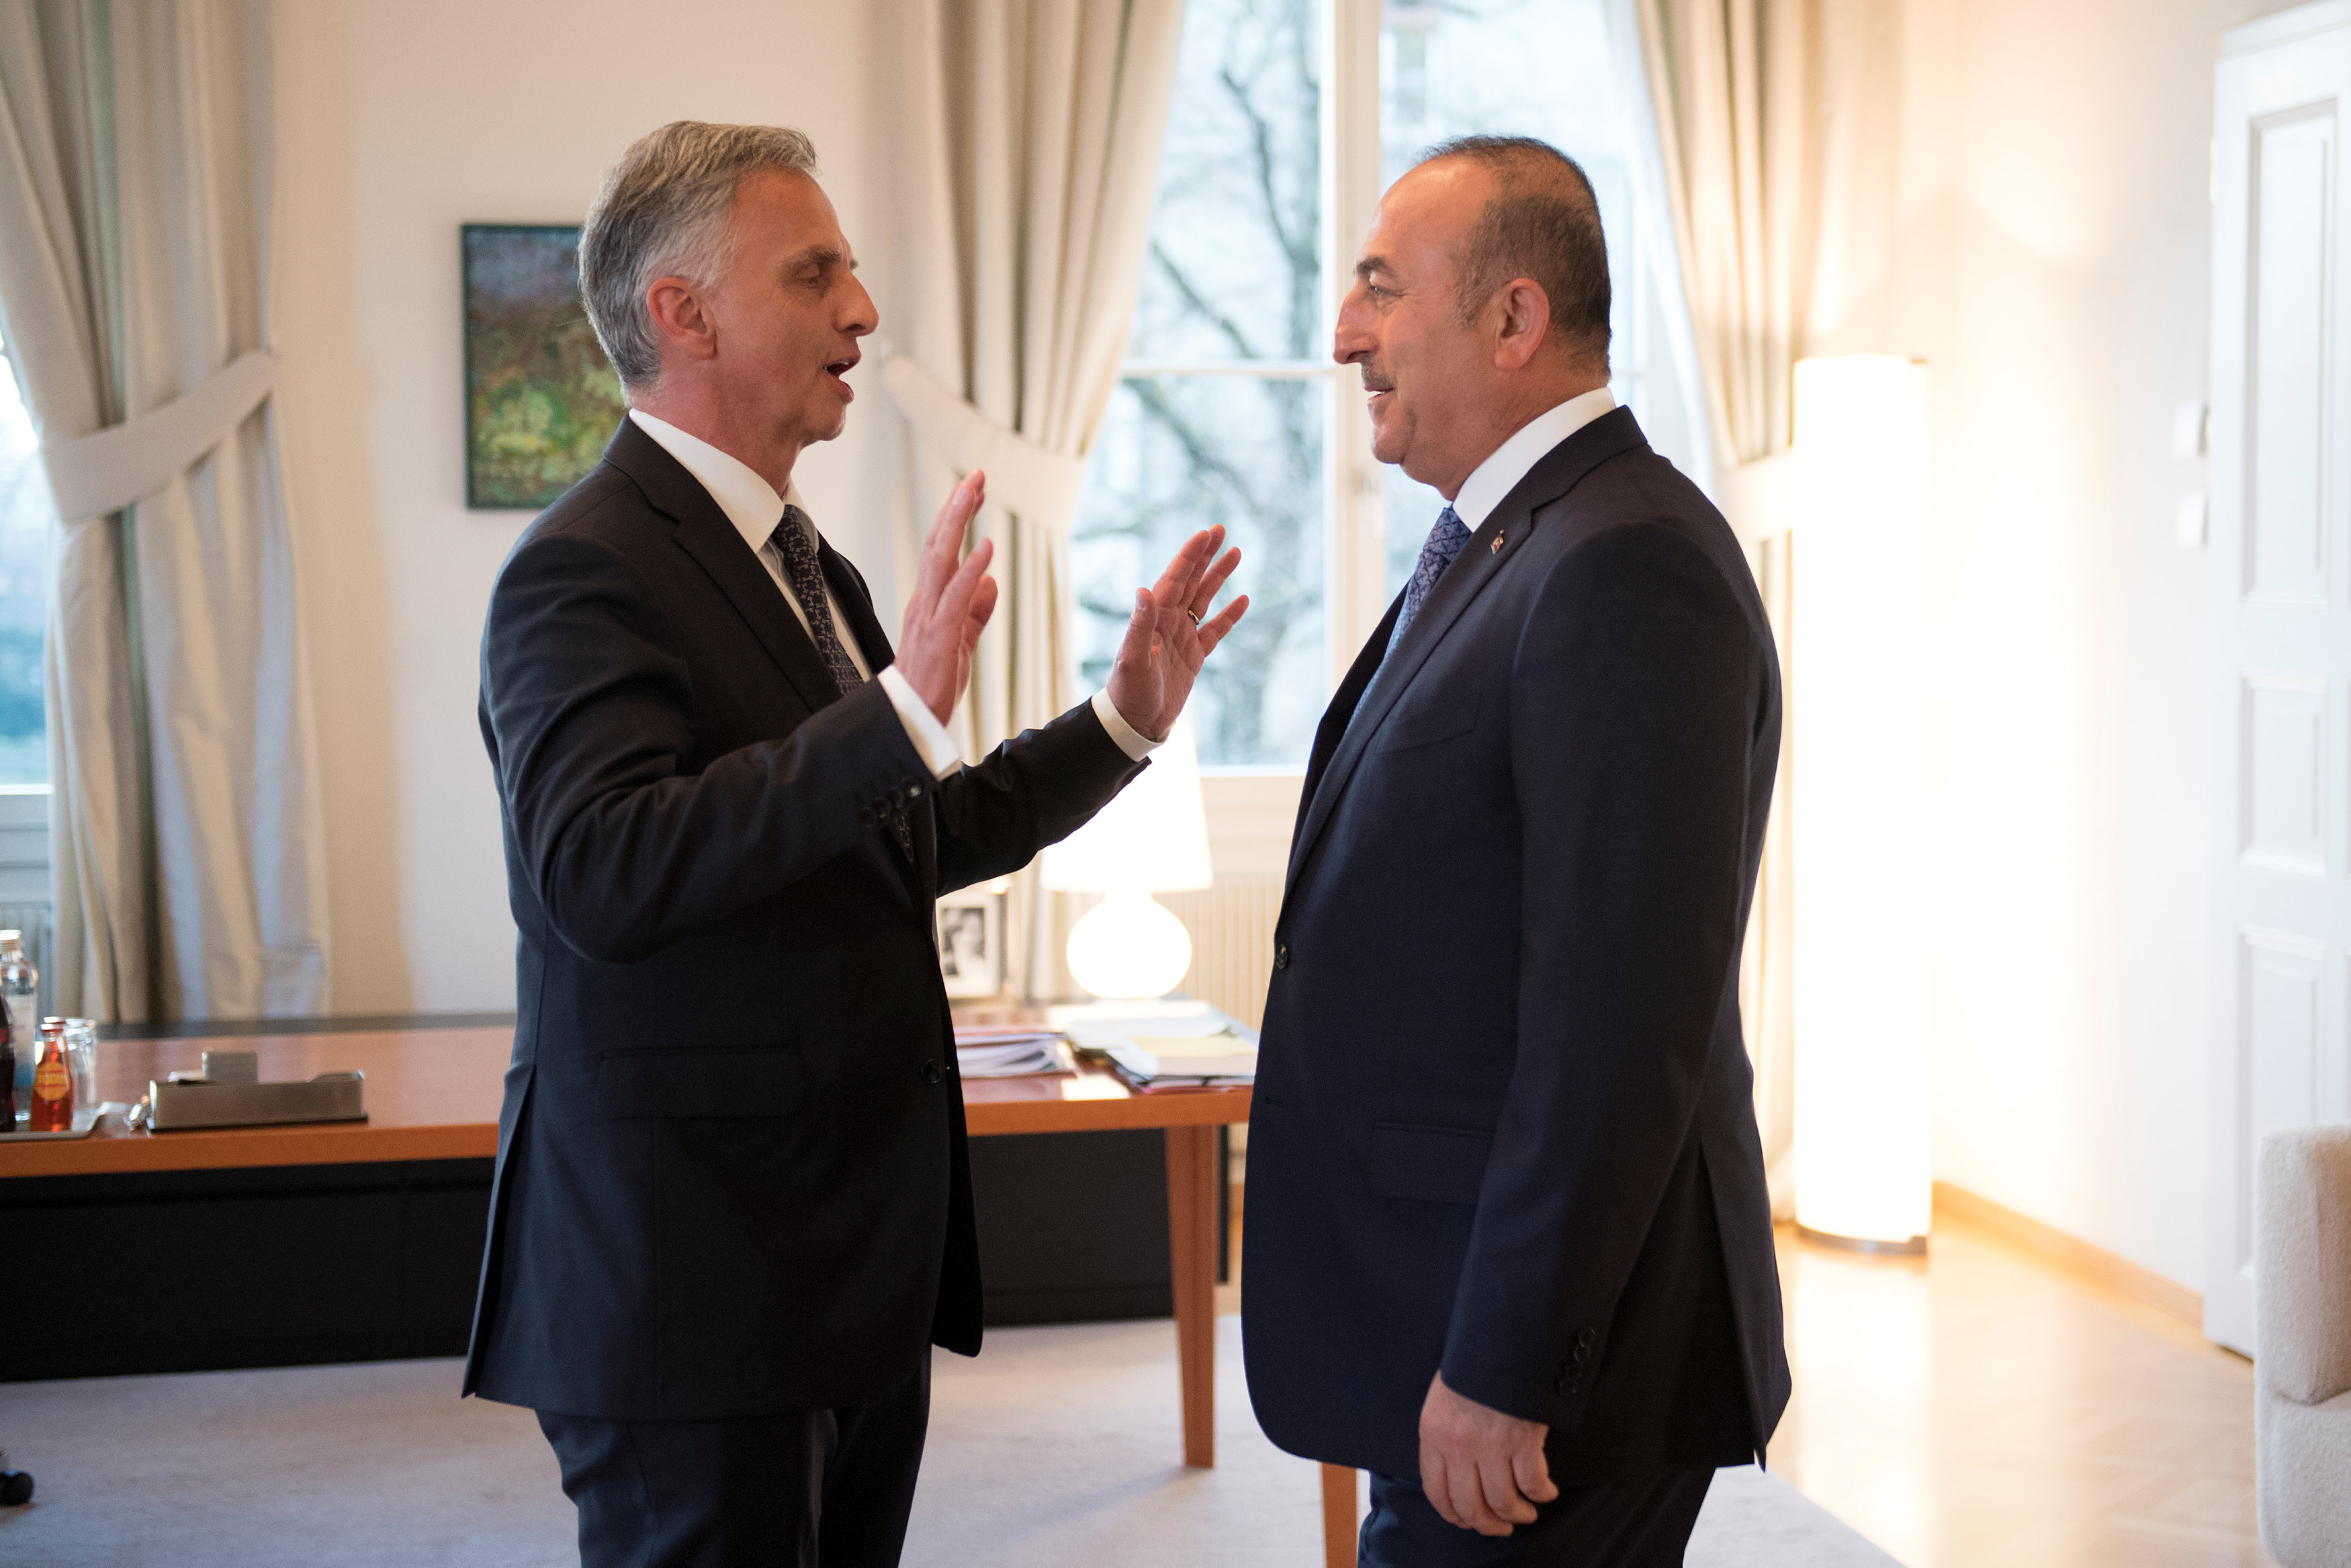 Turkey's Foreign Minister Mevlut Cavusoglu (R) and Switzerland's Federal Councillor Didier Burkhalter during Cavusoglu's visit to Switzerland in Bern, Switzerland on March 23, 2017. (REUTERS/Anthony Anex/Pool)